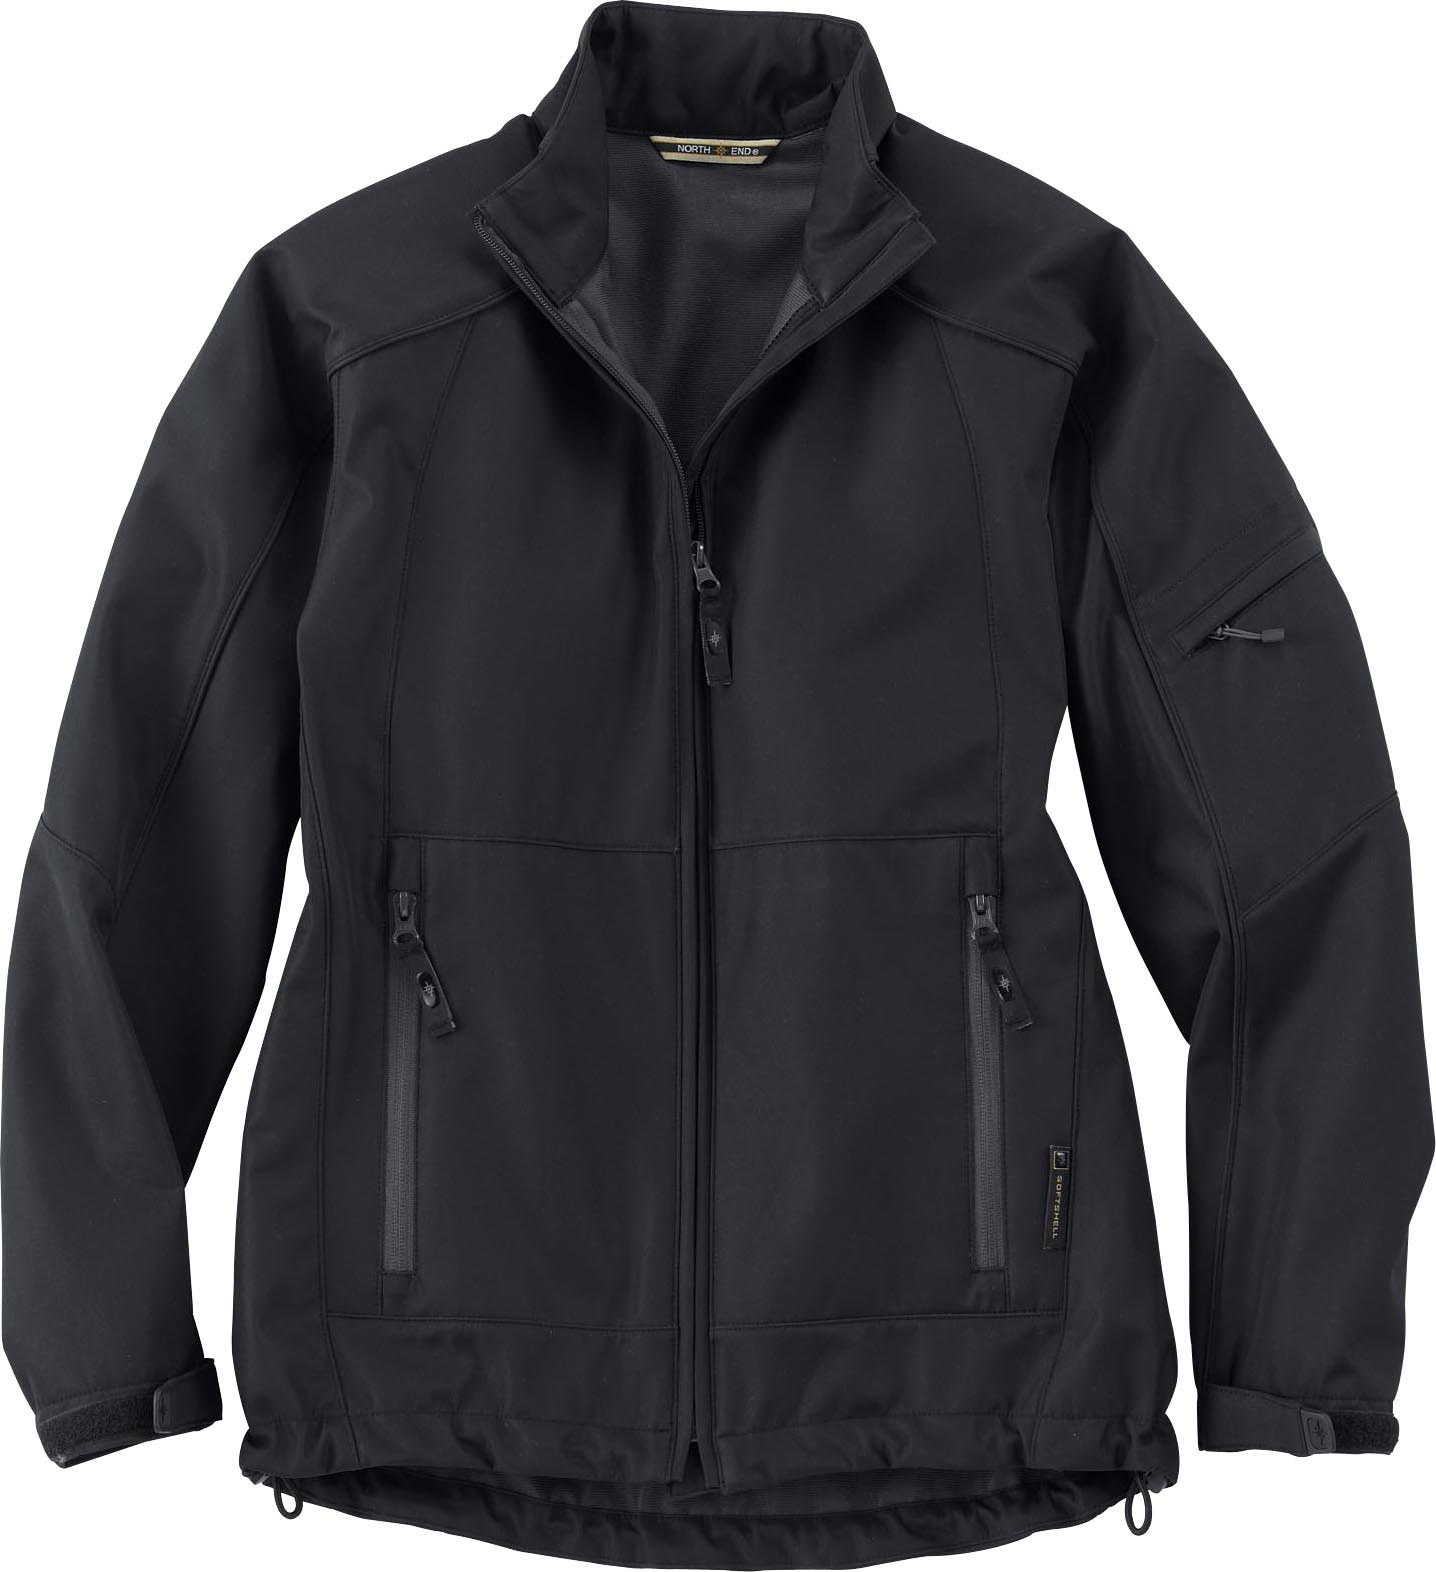 Ash City Performance Jackets 78047 - Ladies' Performance ...